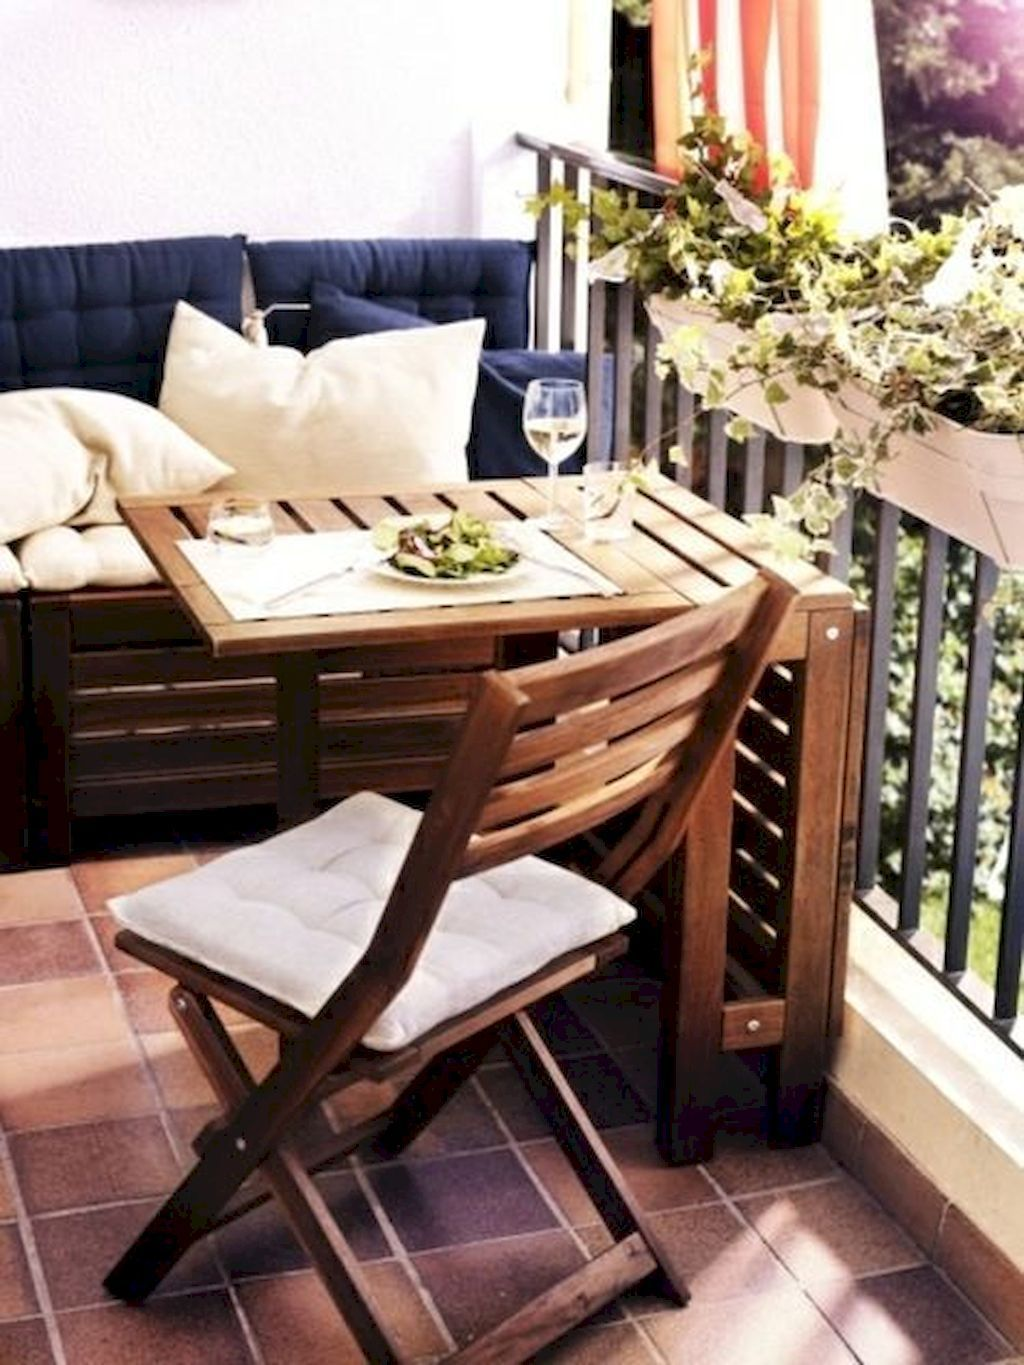 Small Apartment Balcony Garden Ideas: 35 Small Apartment Balcony Decorating Ideas